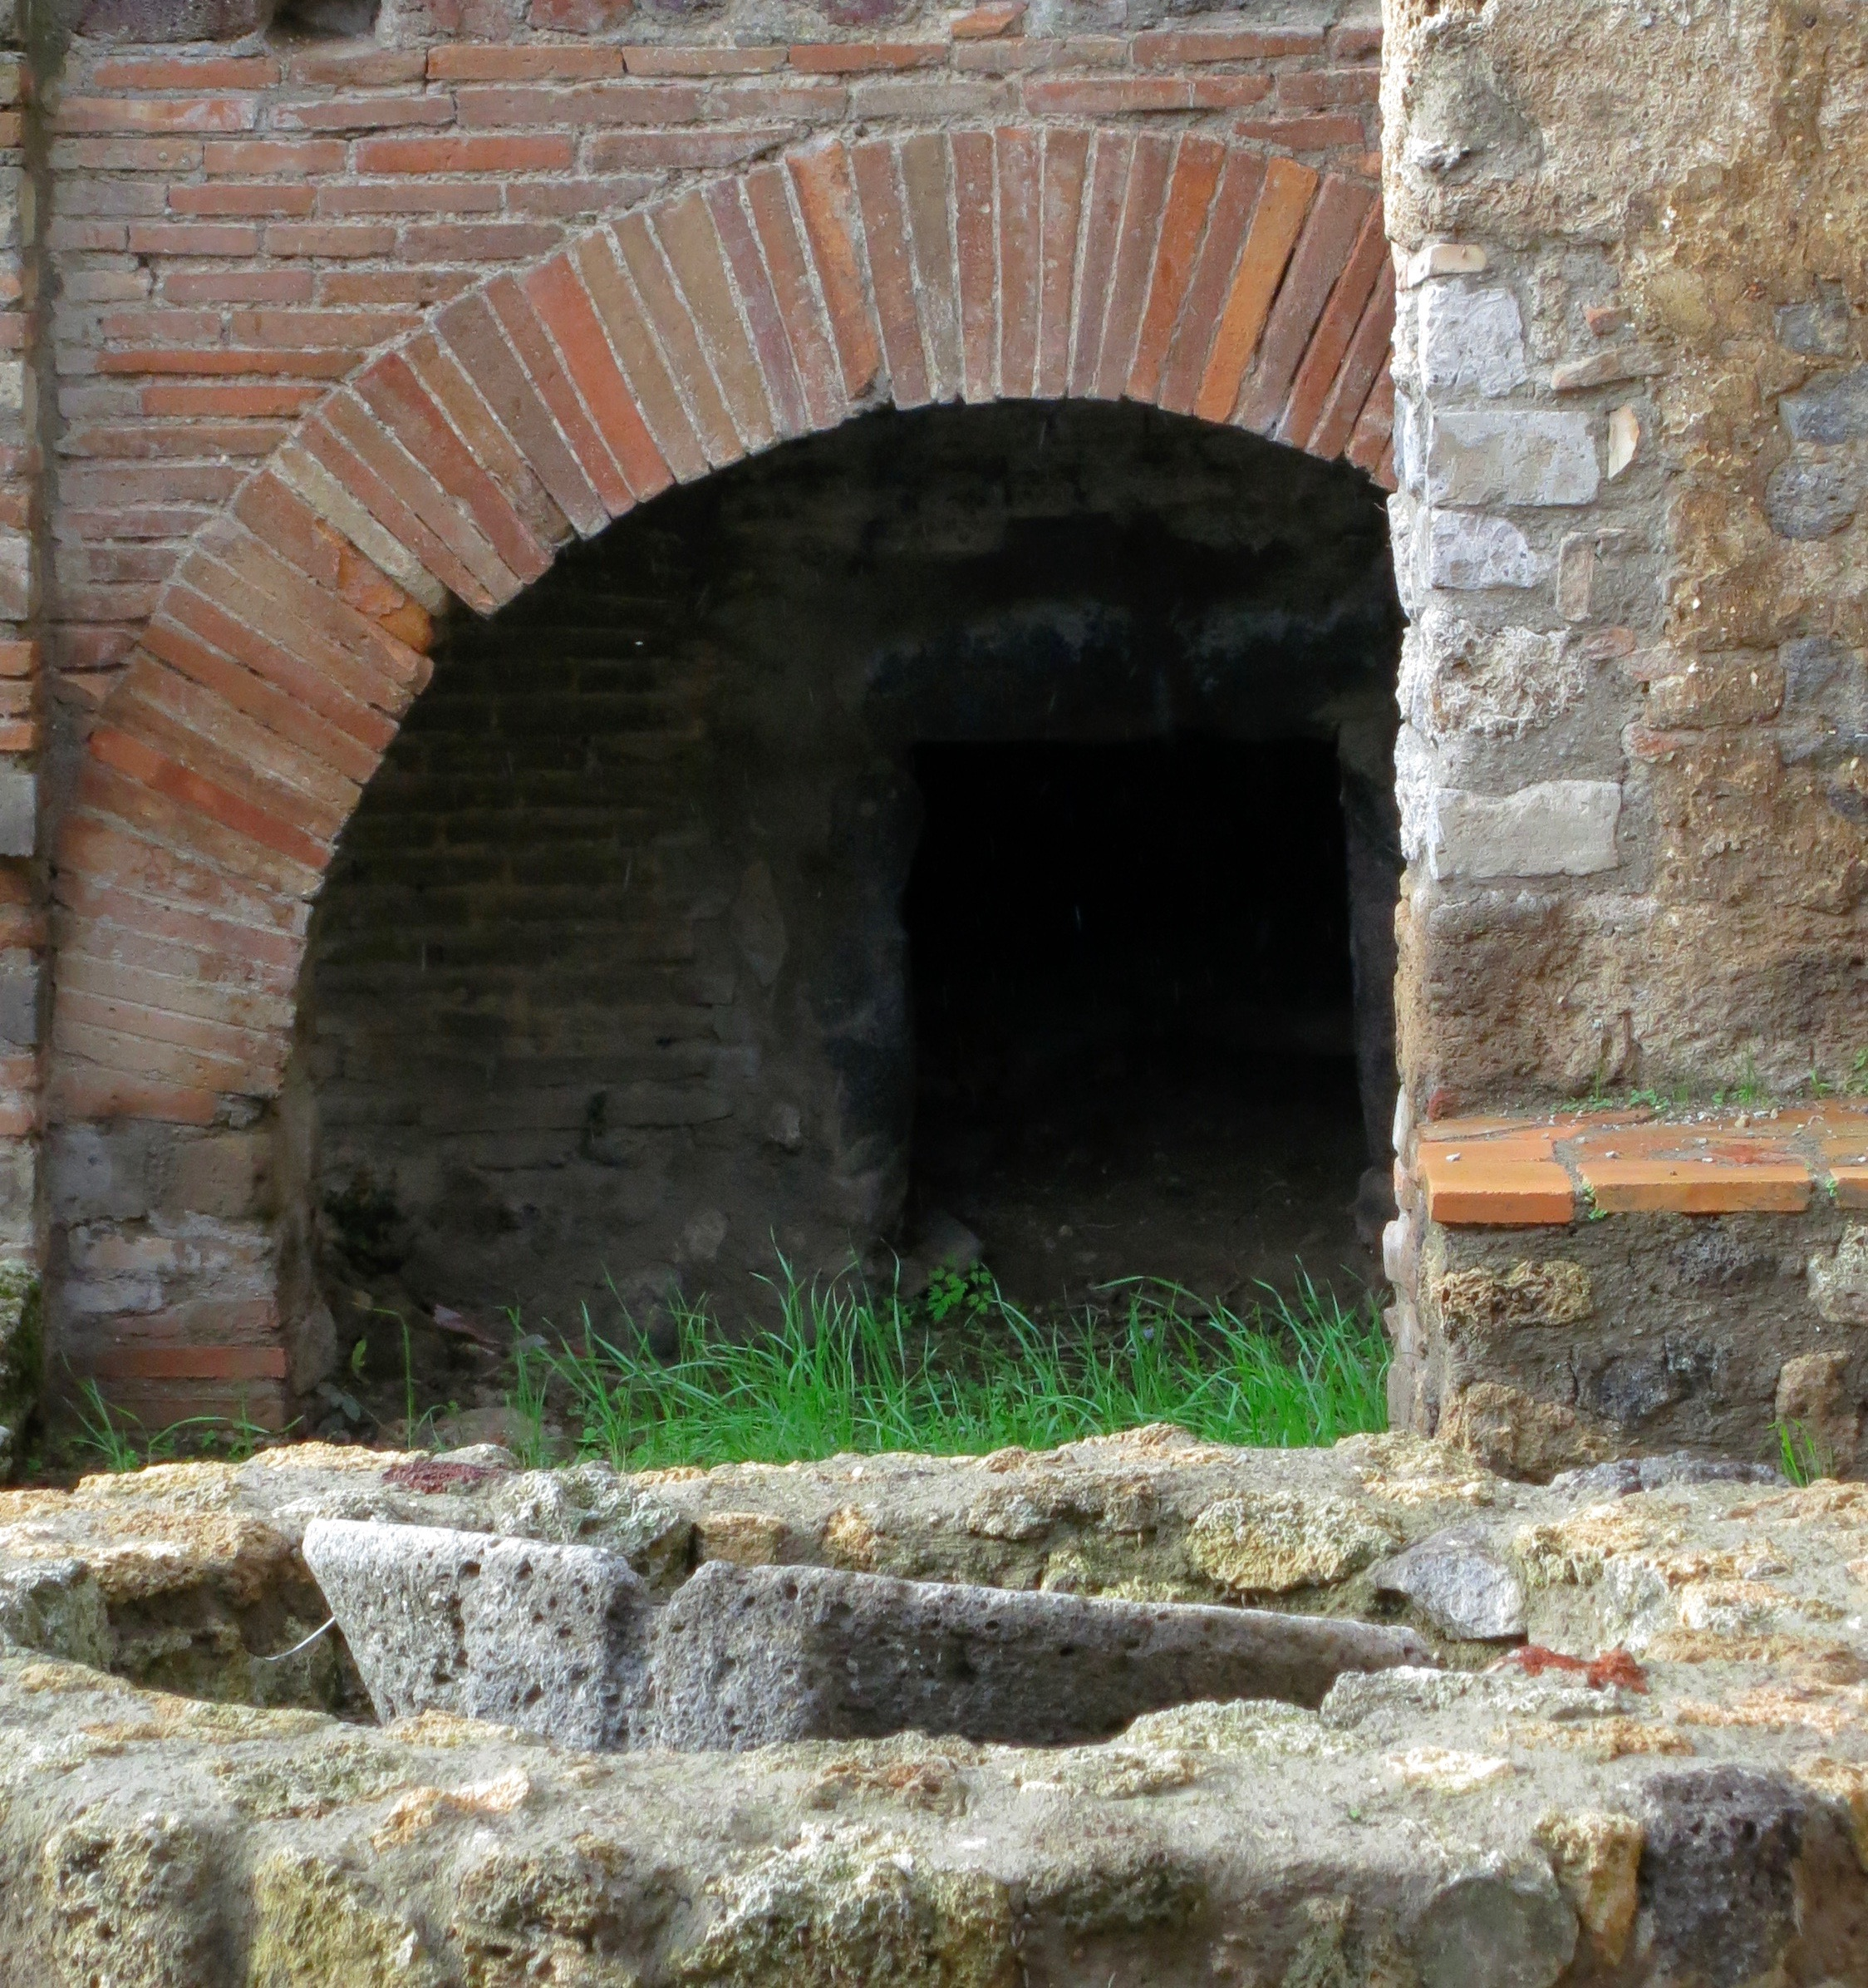 Bread oven in Pompeii